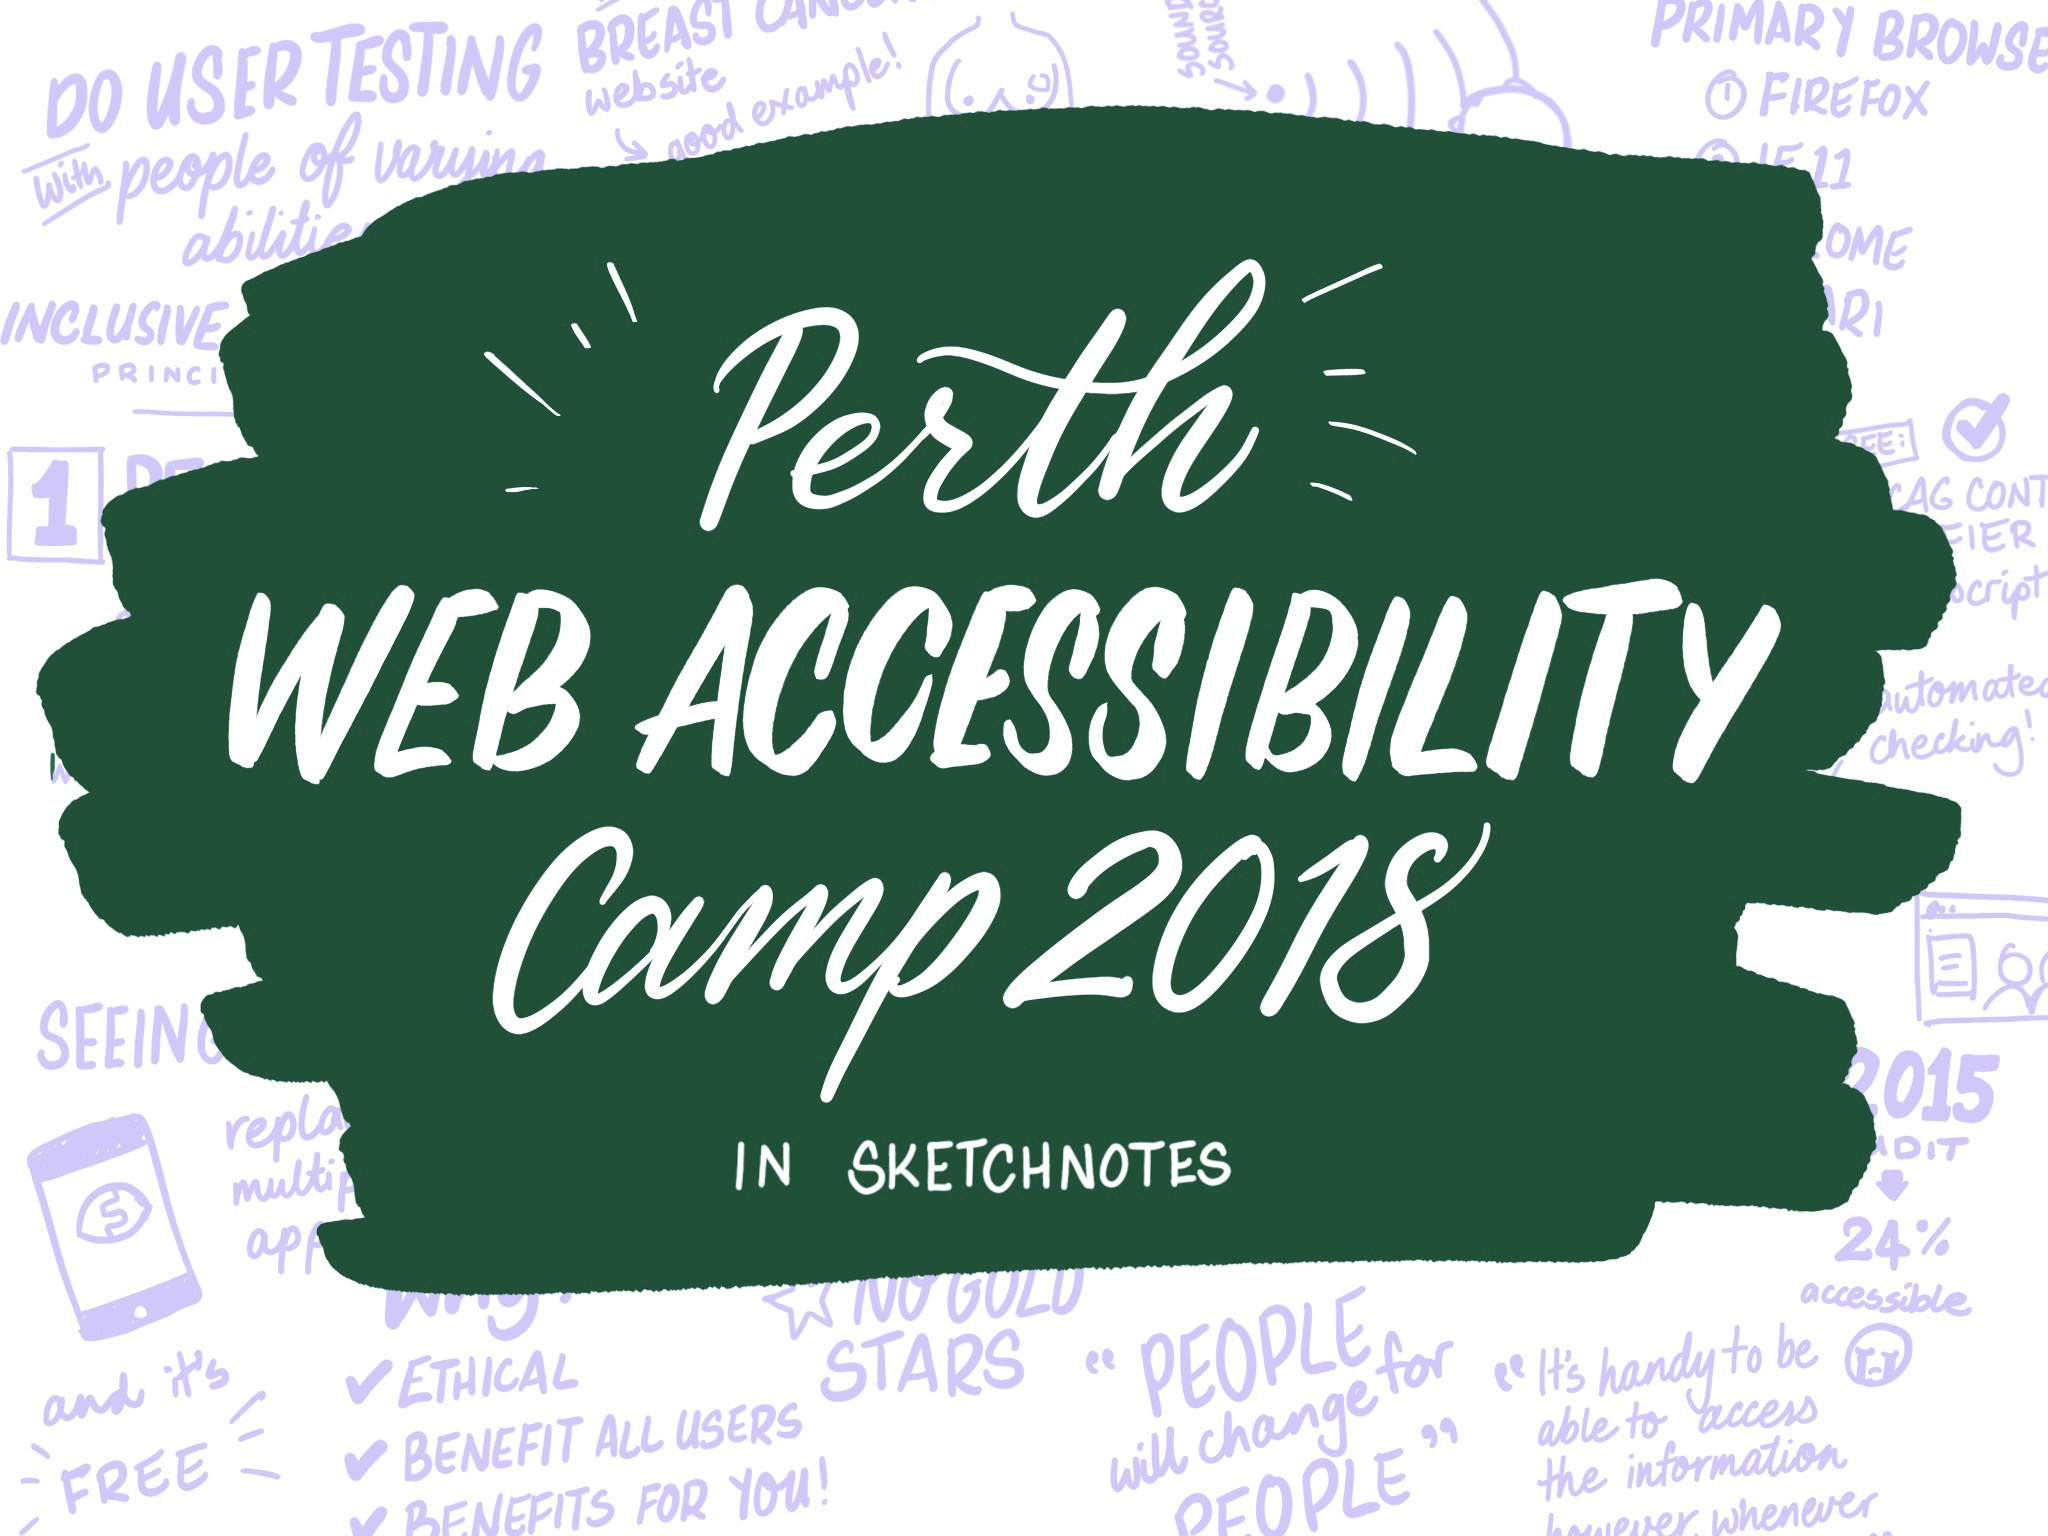 Perth Web Accessibility Camp 2018 in sketchnotes